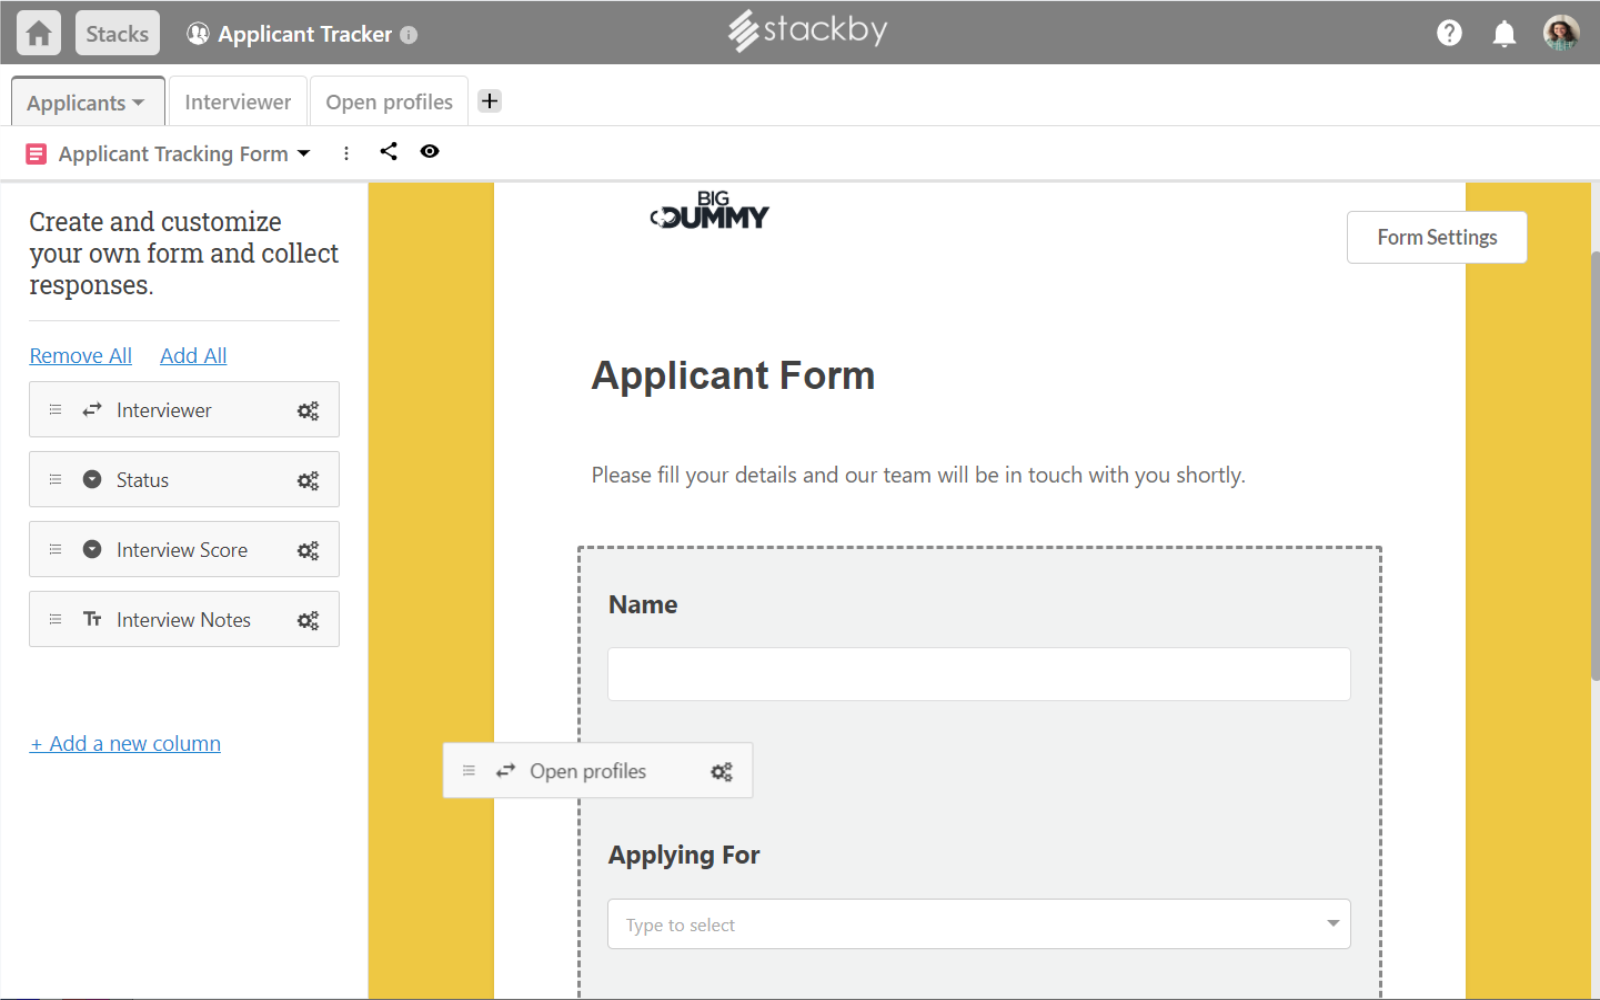 Stackby Software - 4